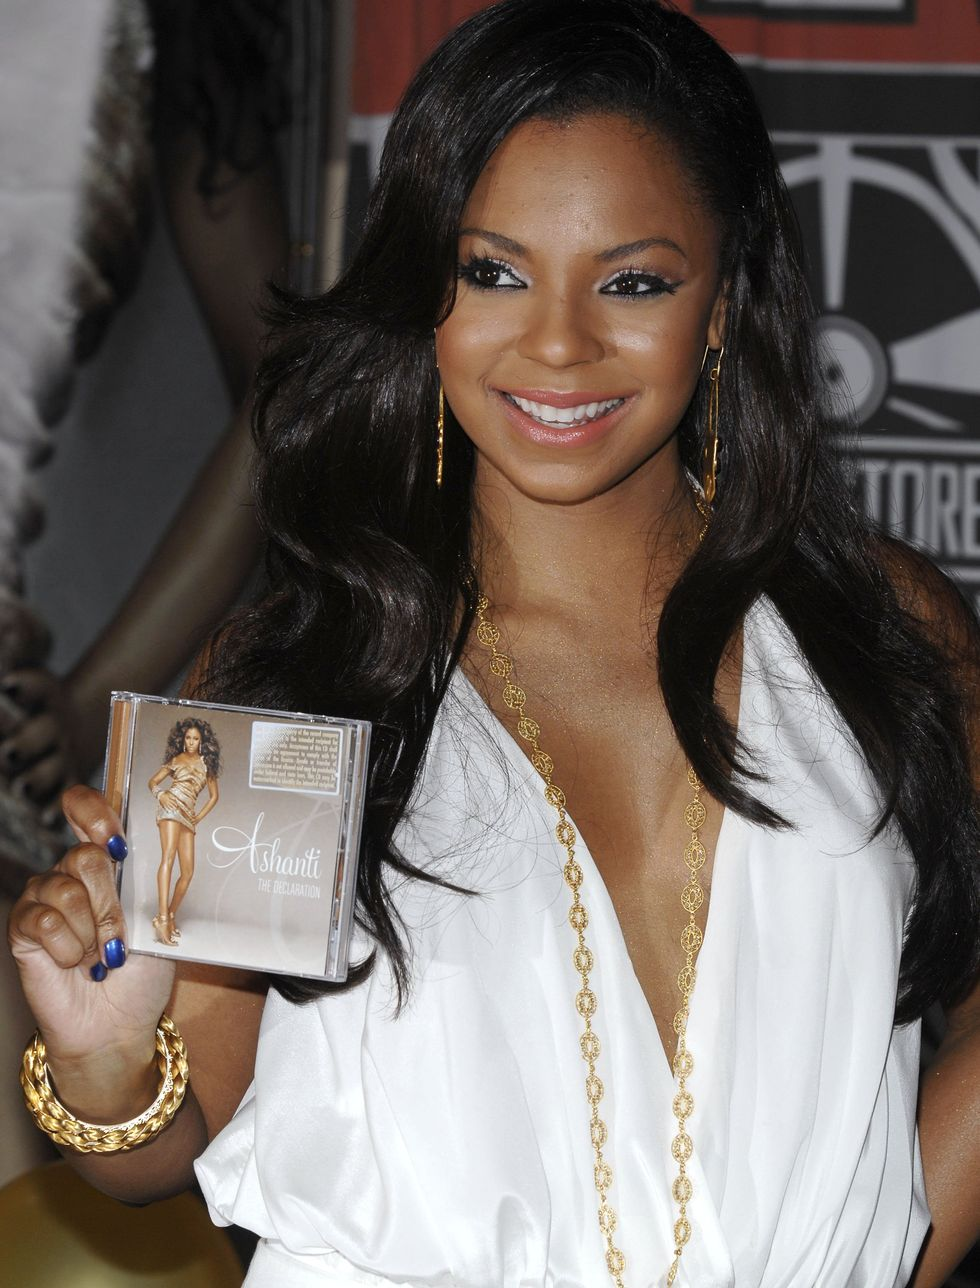 ashanti-the-declaration-promotion-in-new-york-city-01